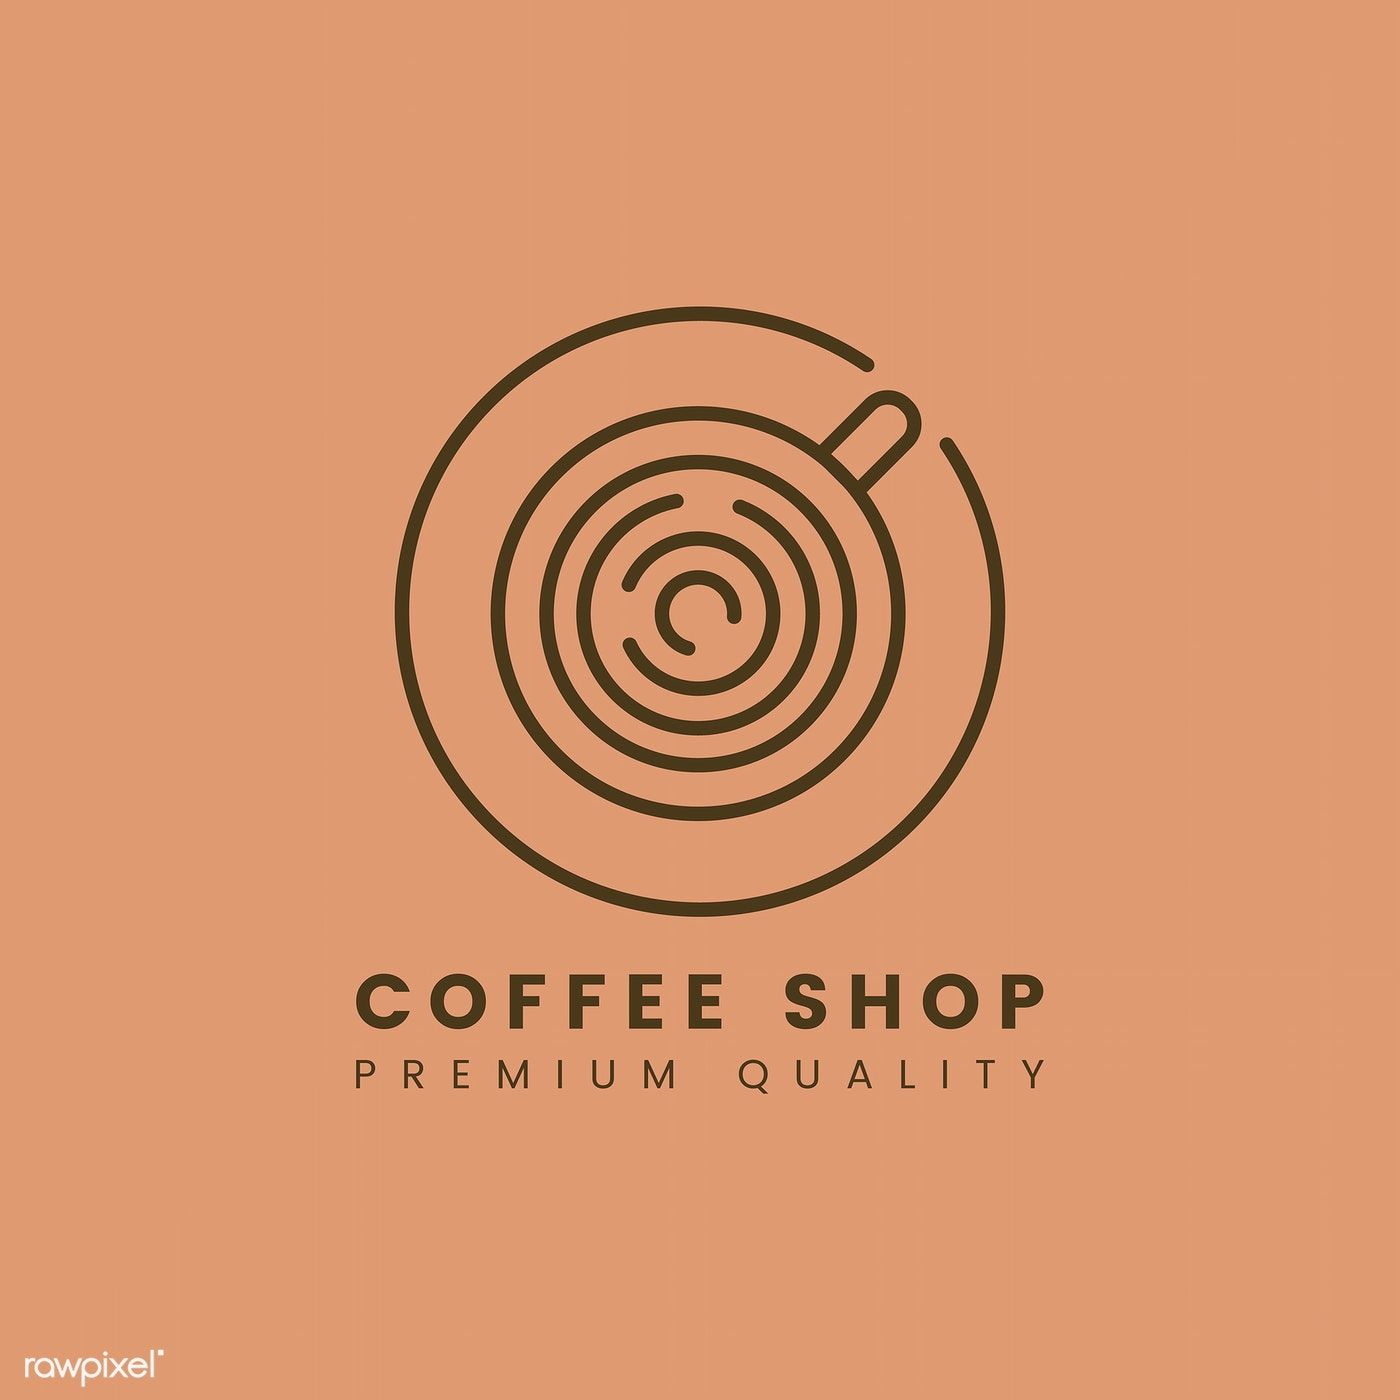 Premium quality coffee shop logo vector | free image by